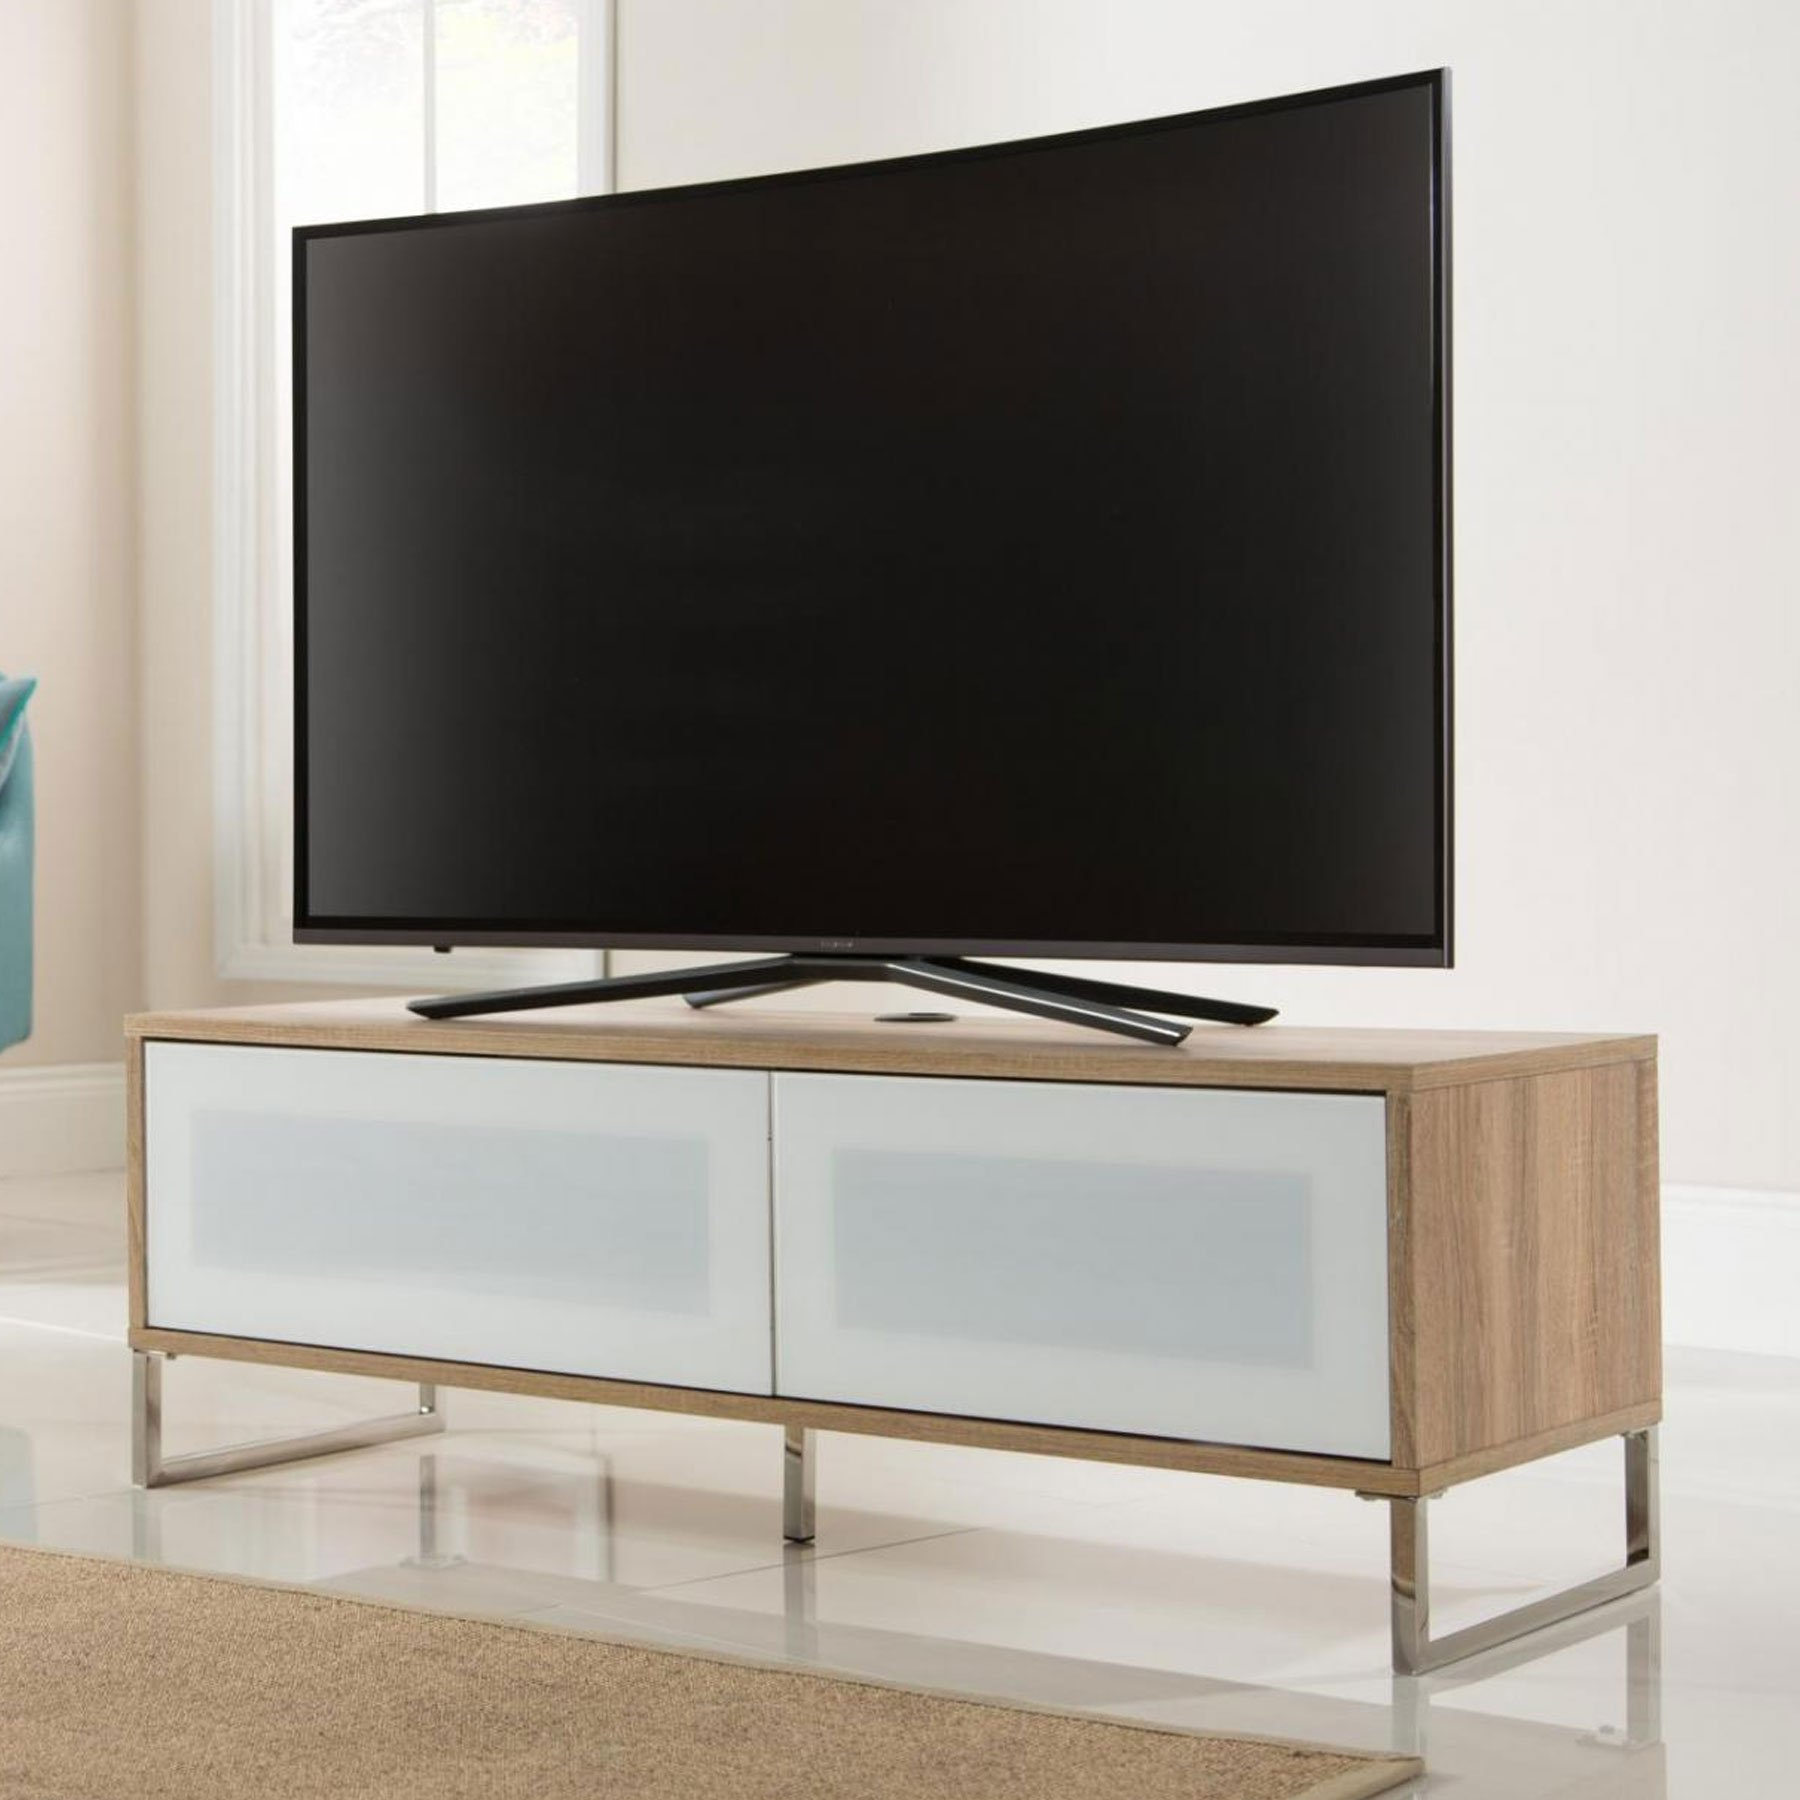 """Alphason Helium 120cm Oak Tv Stand For Up To 50"""" Tvs Pertaining To Most Recent Tv Stands For Tvs Up To 50"""" (View 7 of 25)"""